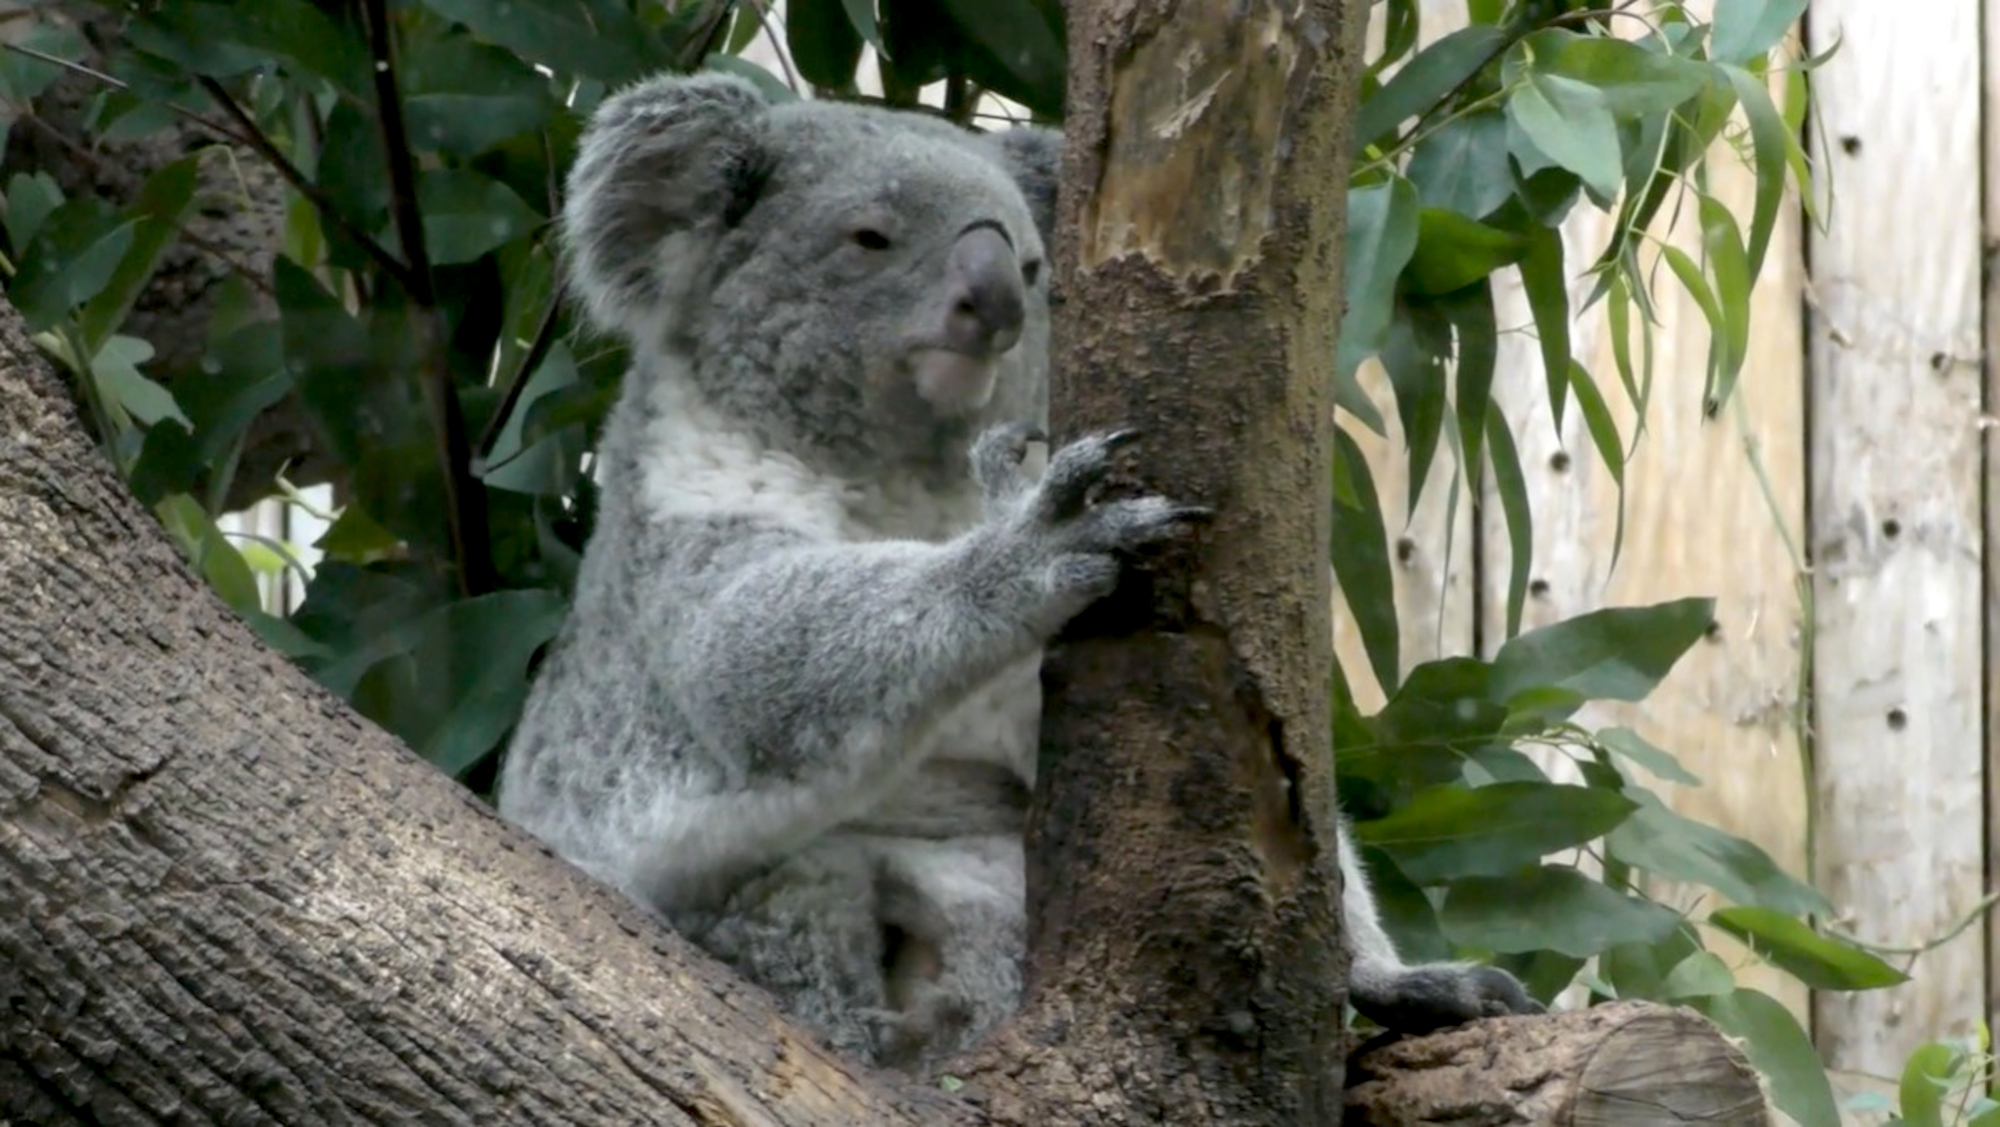 Un-Bear-Ably Cute: Baby Koala Emerges From Mom's Pouch